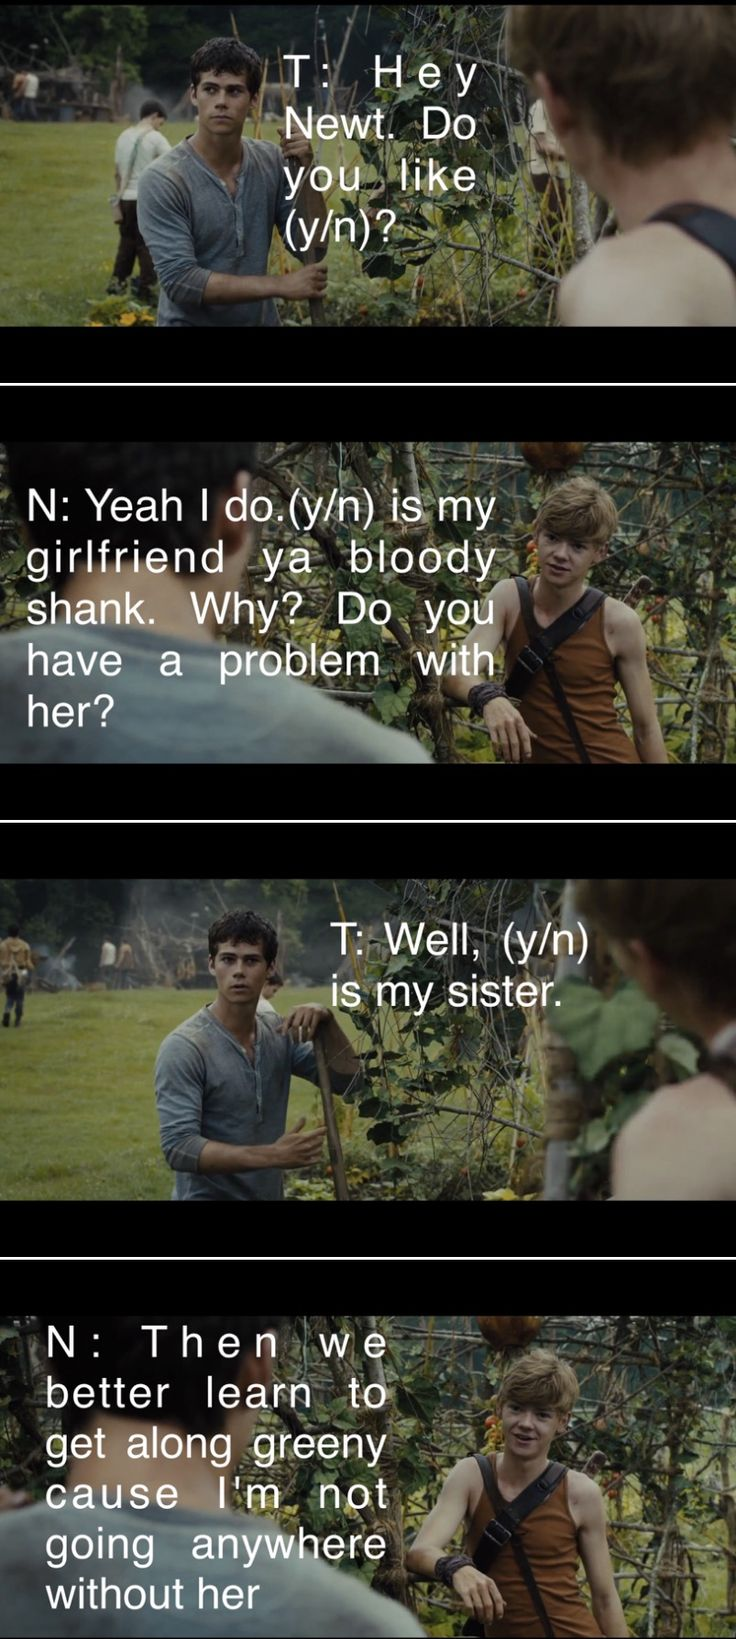 This is the best thing ever!!!!they should put this in the movie. Thomas and Newt gotta be besties now.